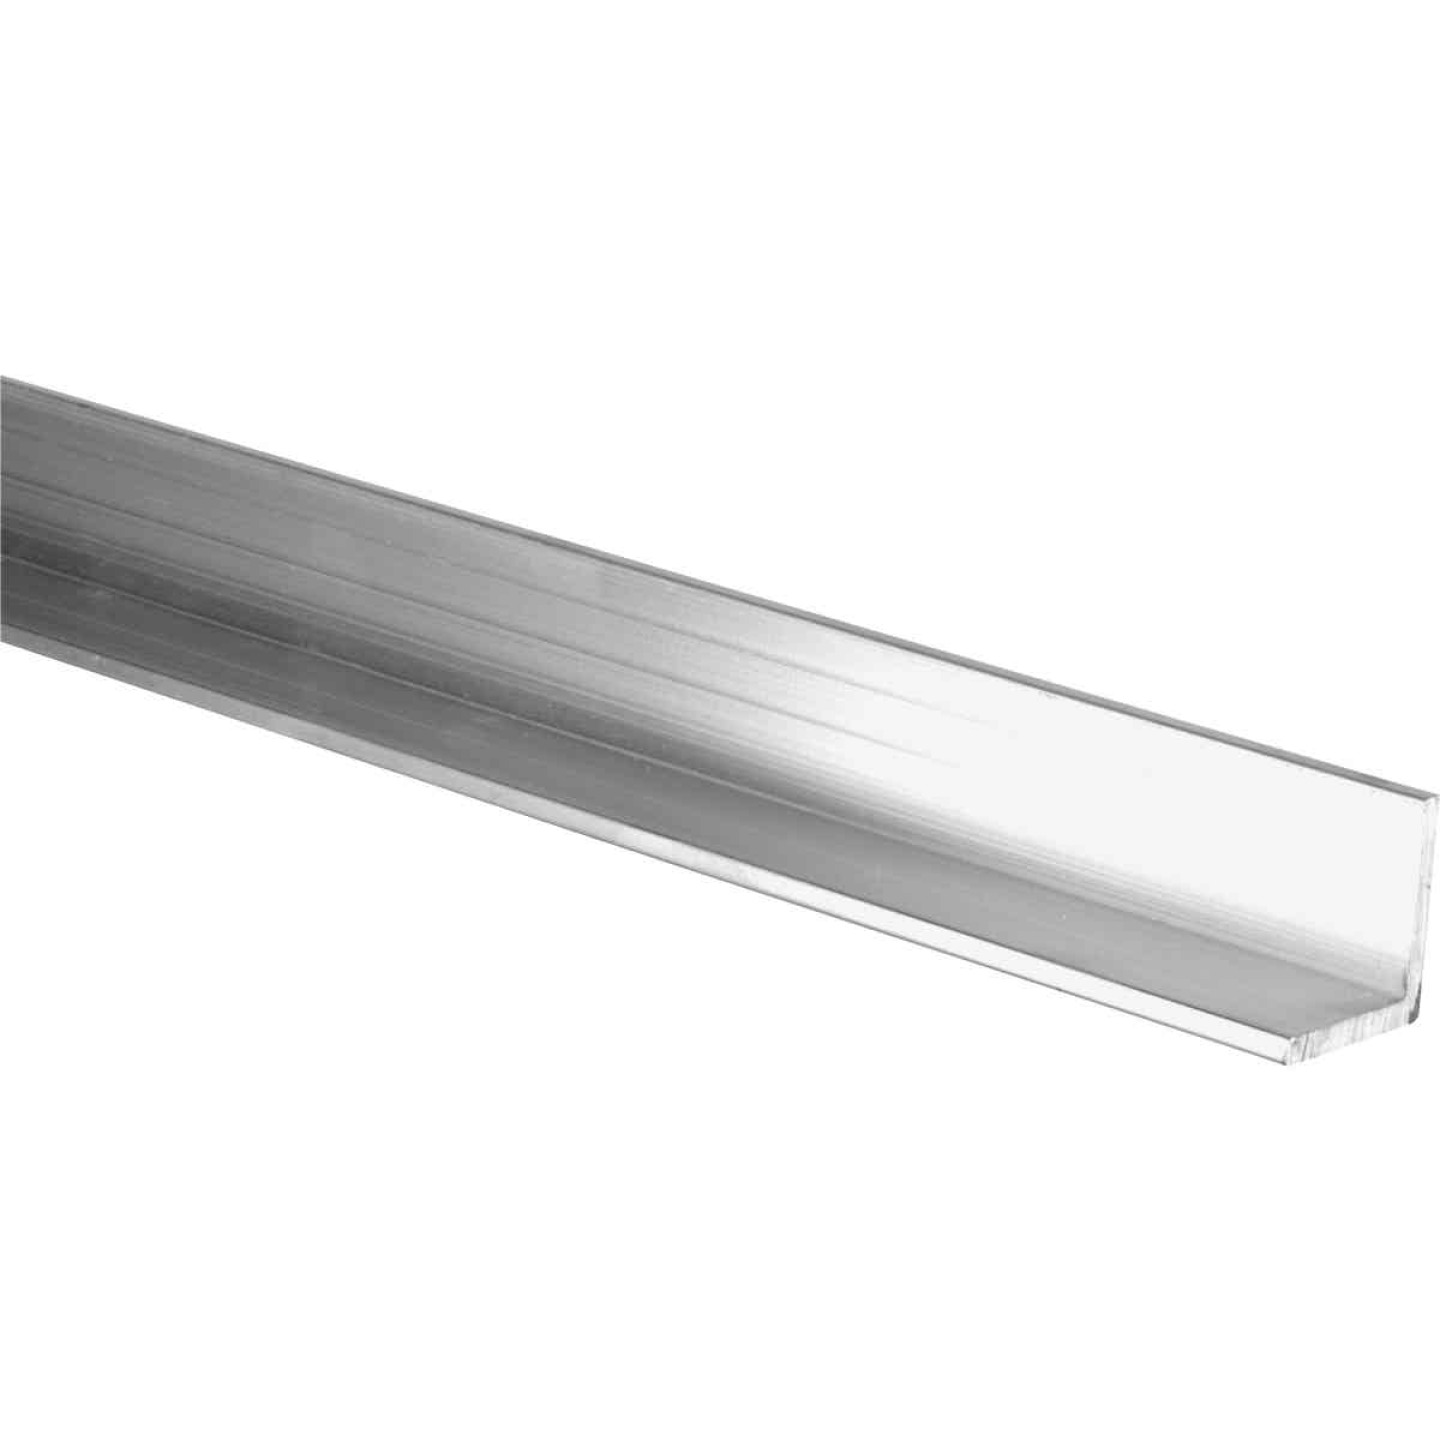 HILLMAN Steelworks Mill 3/4 In. x 4 Ft., 1/16 In. Aluminum Solid Angle Image 1